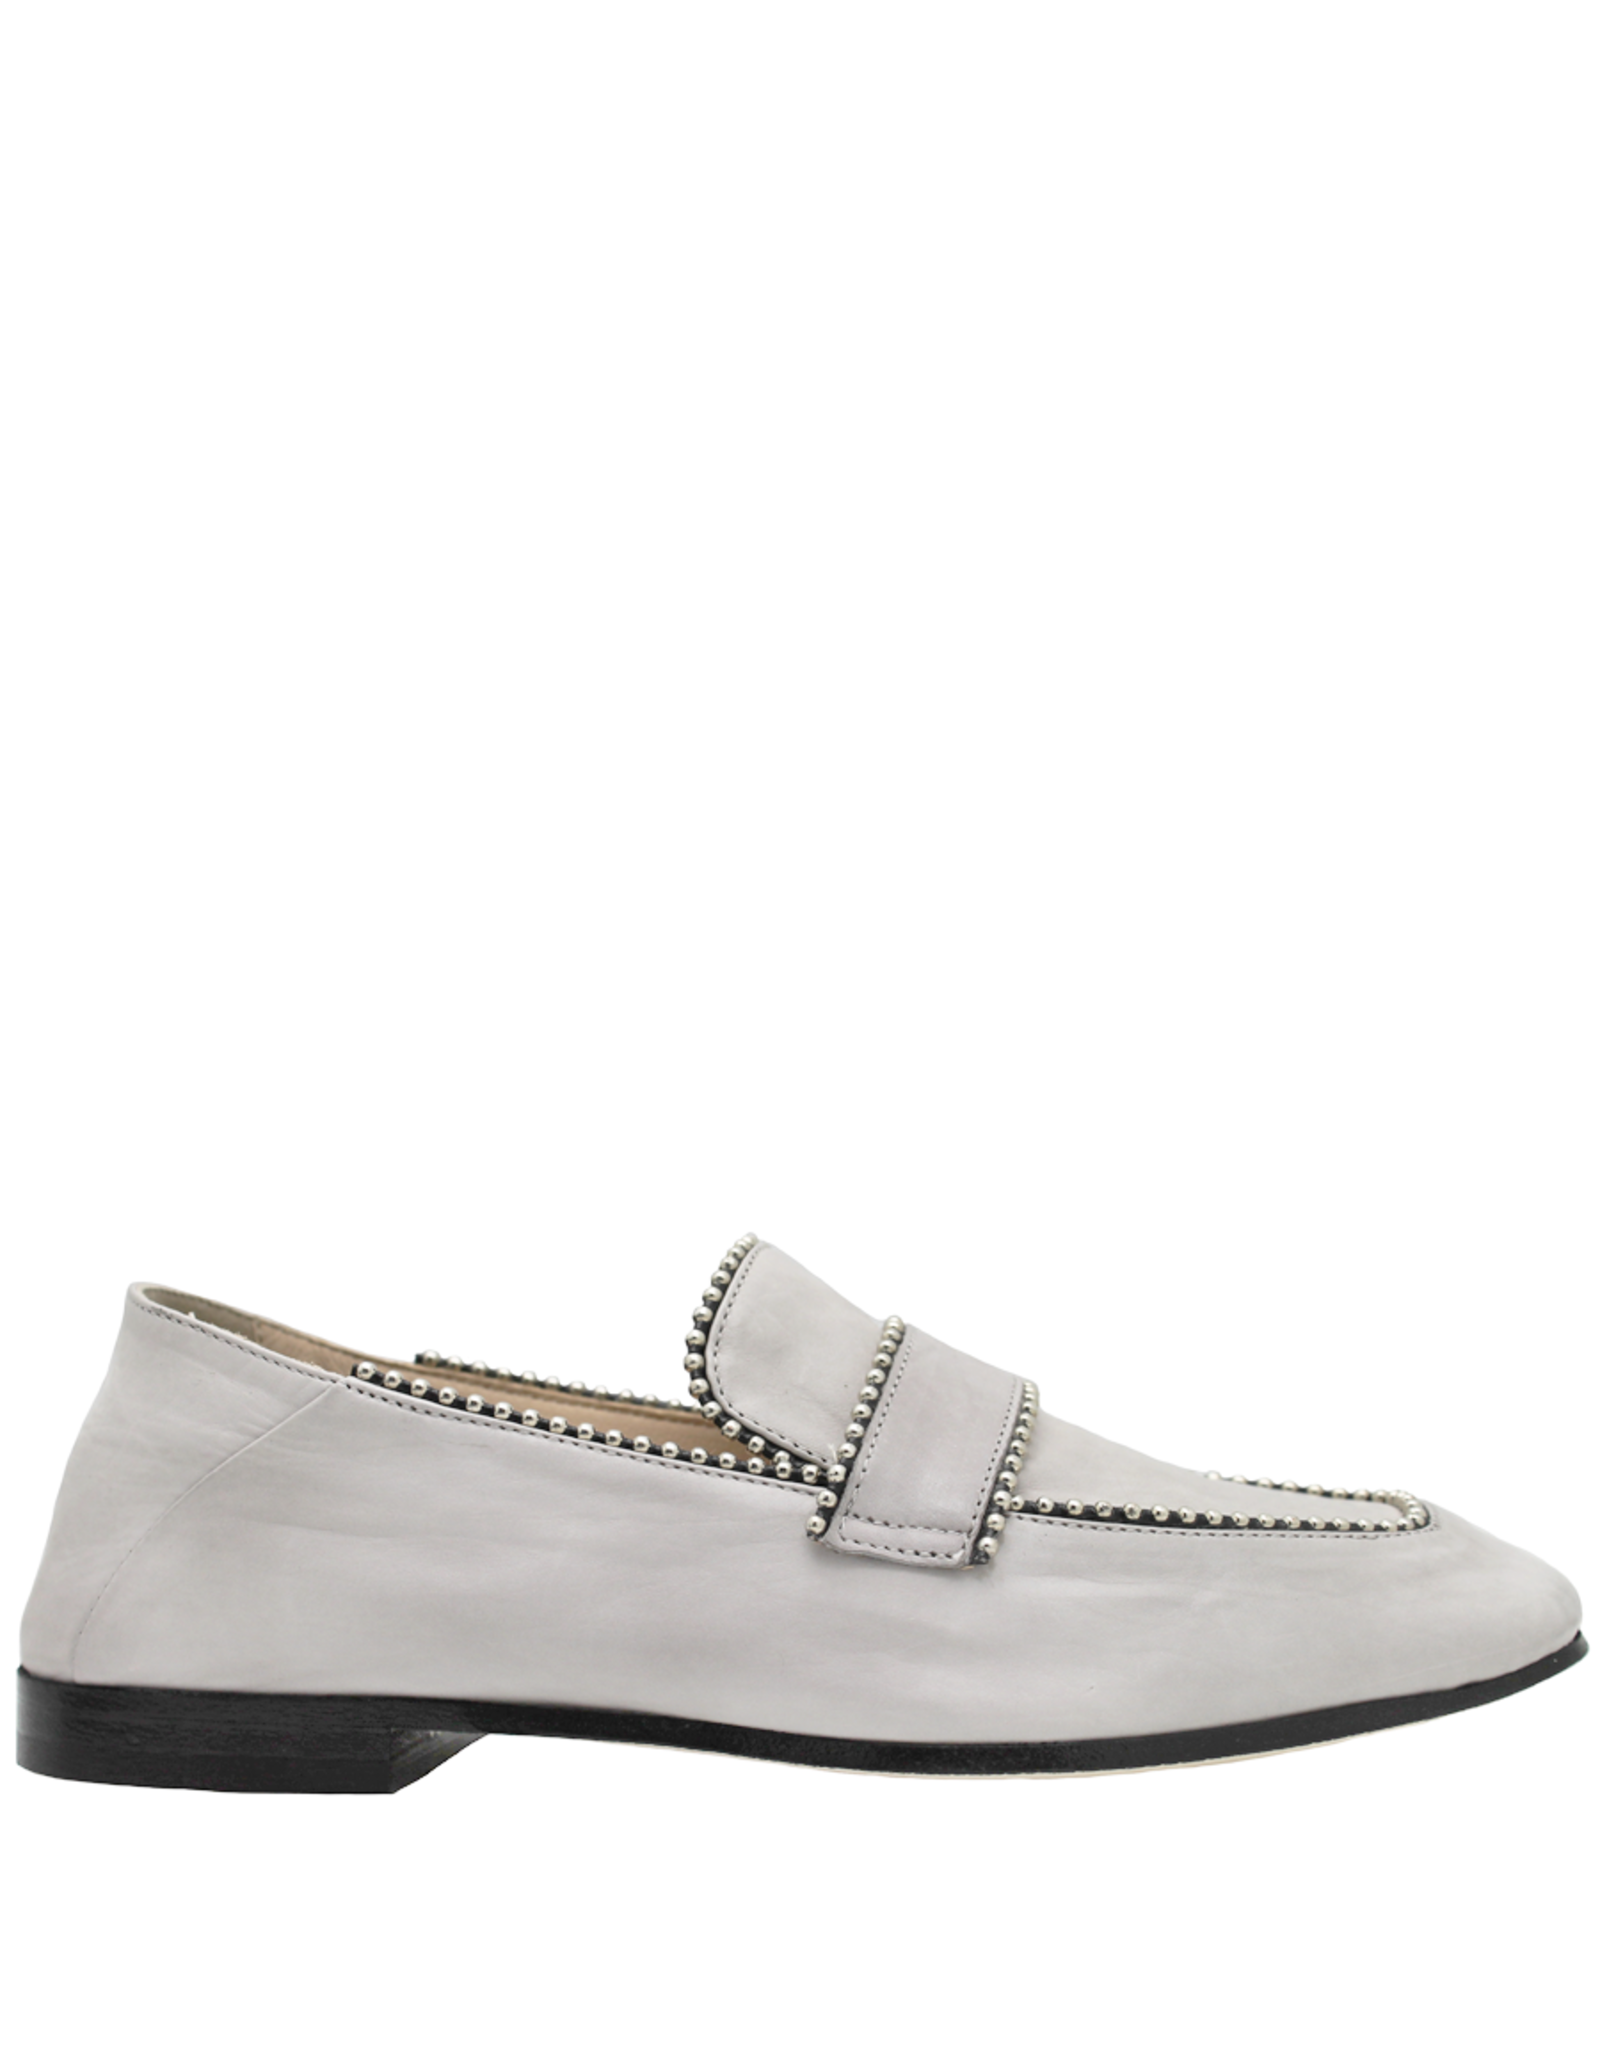 Now Now Grey Loafer With Studs-6947